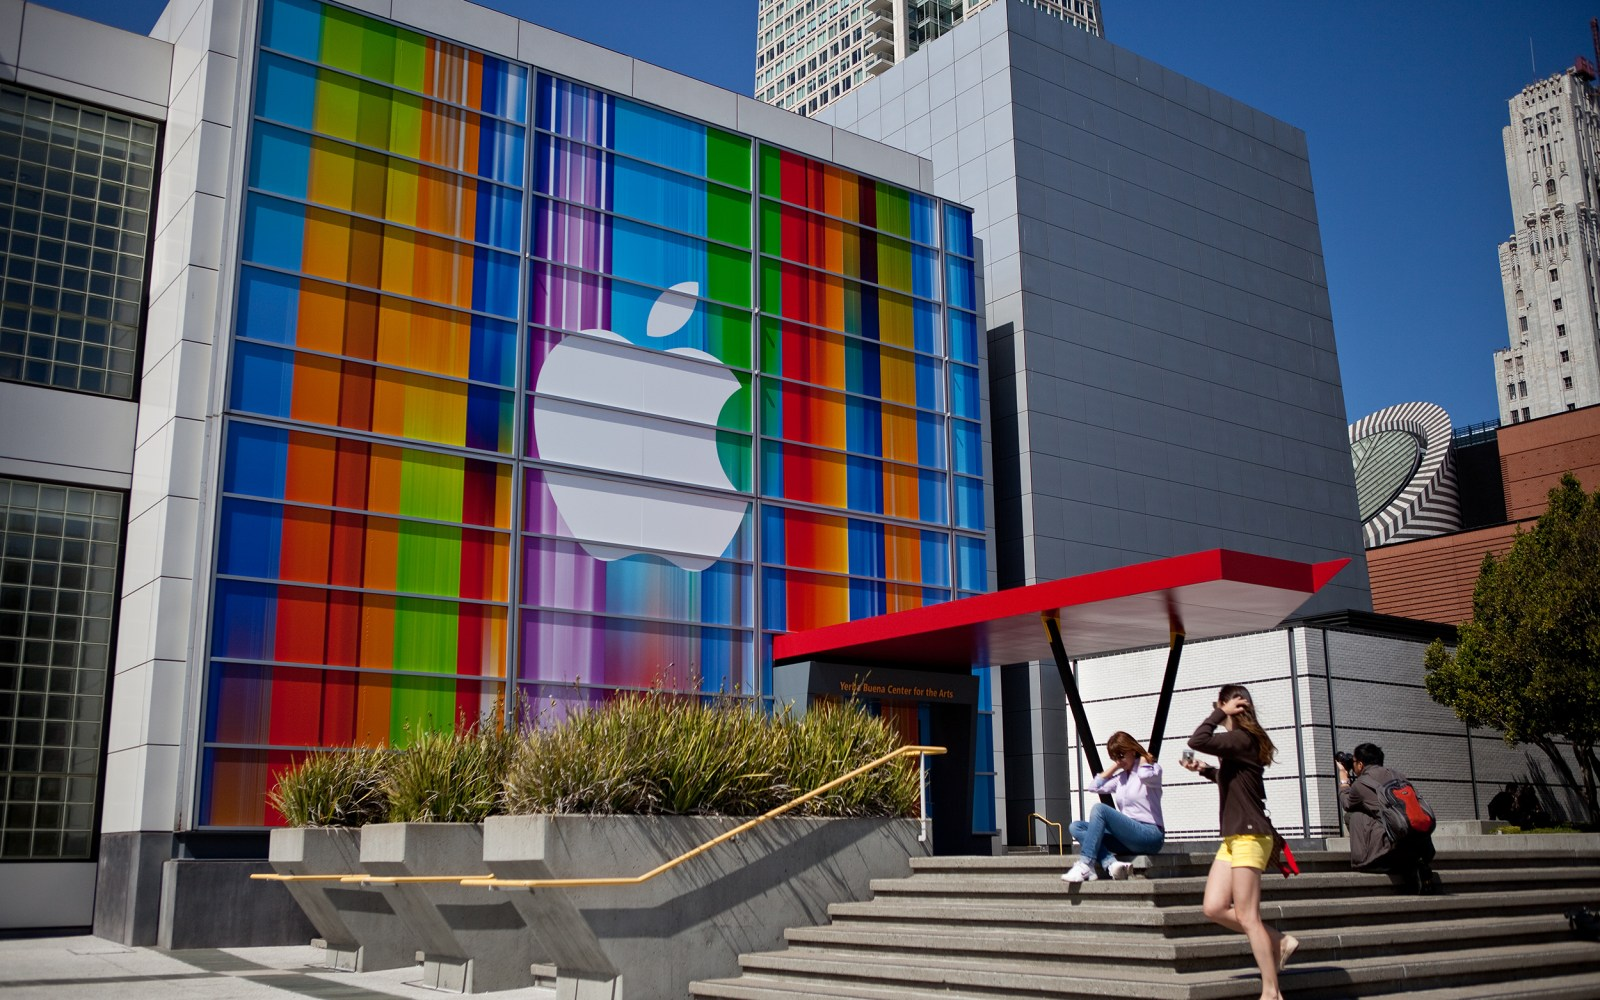 Can Apple announce the rest of 2013's products in just one event?